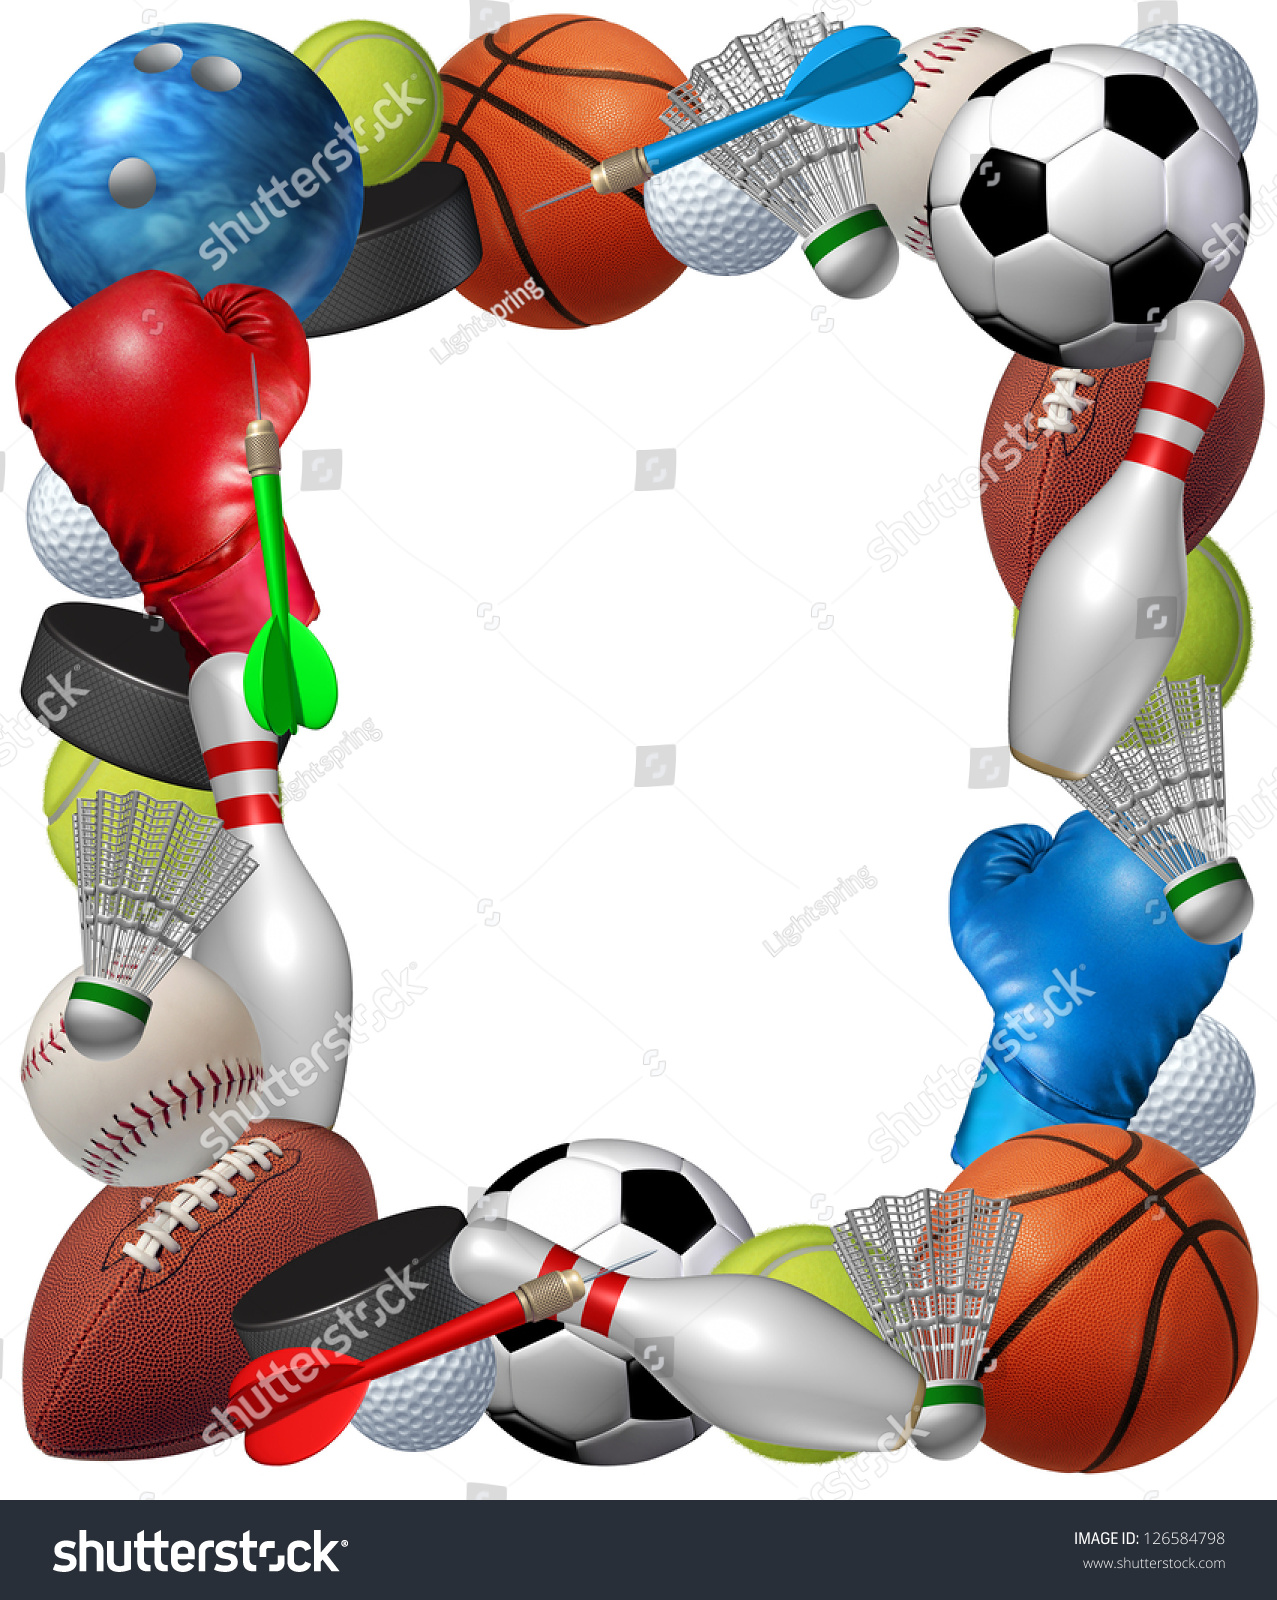 Sports Frame Sport Equipment Basketball Boxing Stock Illustration Football Golf Soccer Tennis With From Bowling Badminton Darts Ice